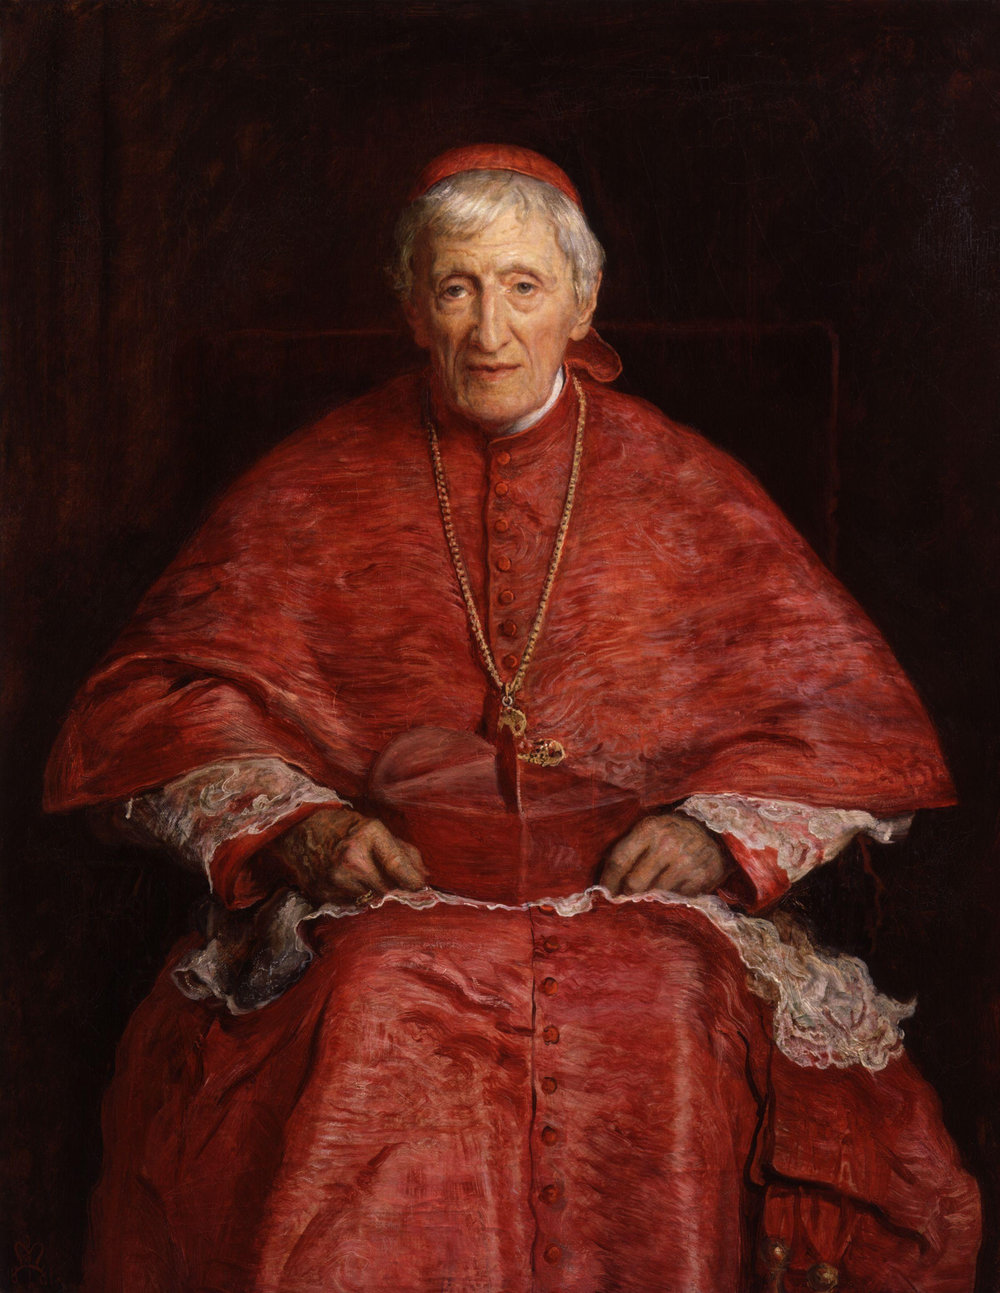 john henry newman, wikipedia Commons